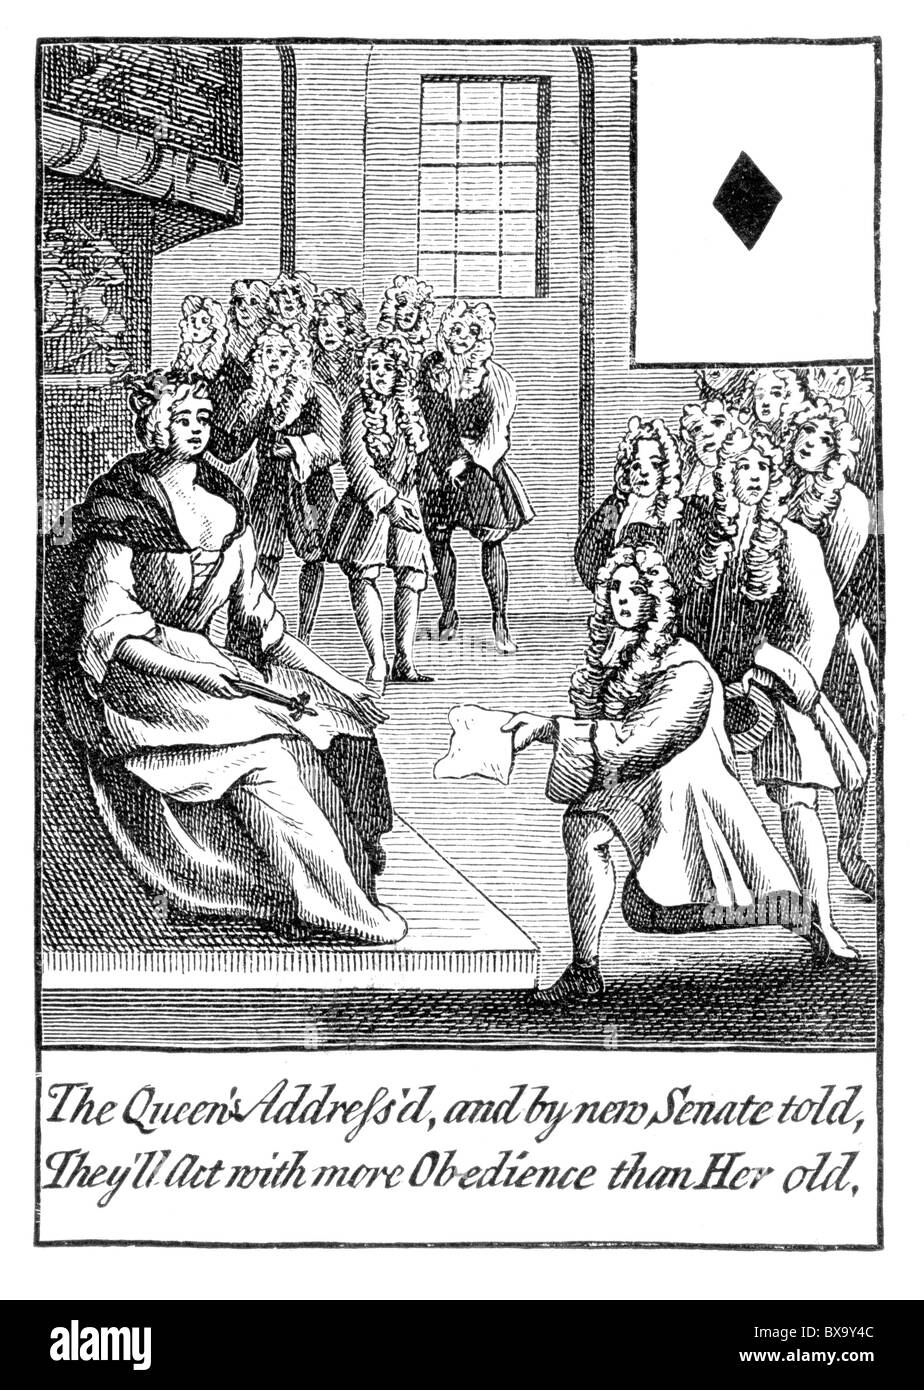 Design For An 18th Century Playing Card 1710 Queen Anne Receiving Address From The New Parliament